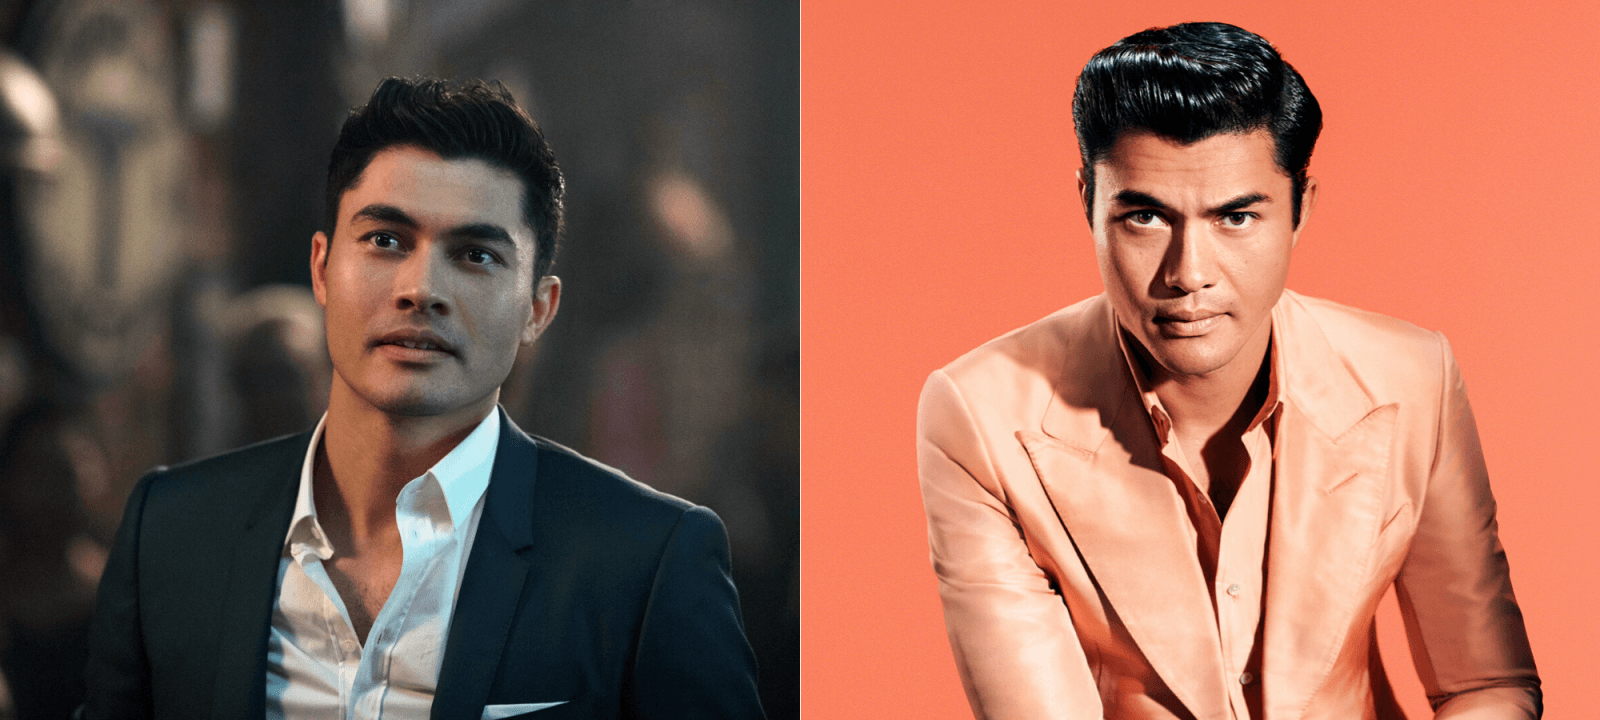 Malaysian-born Actor Henry Golding Named in Time's 100 Next